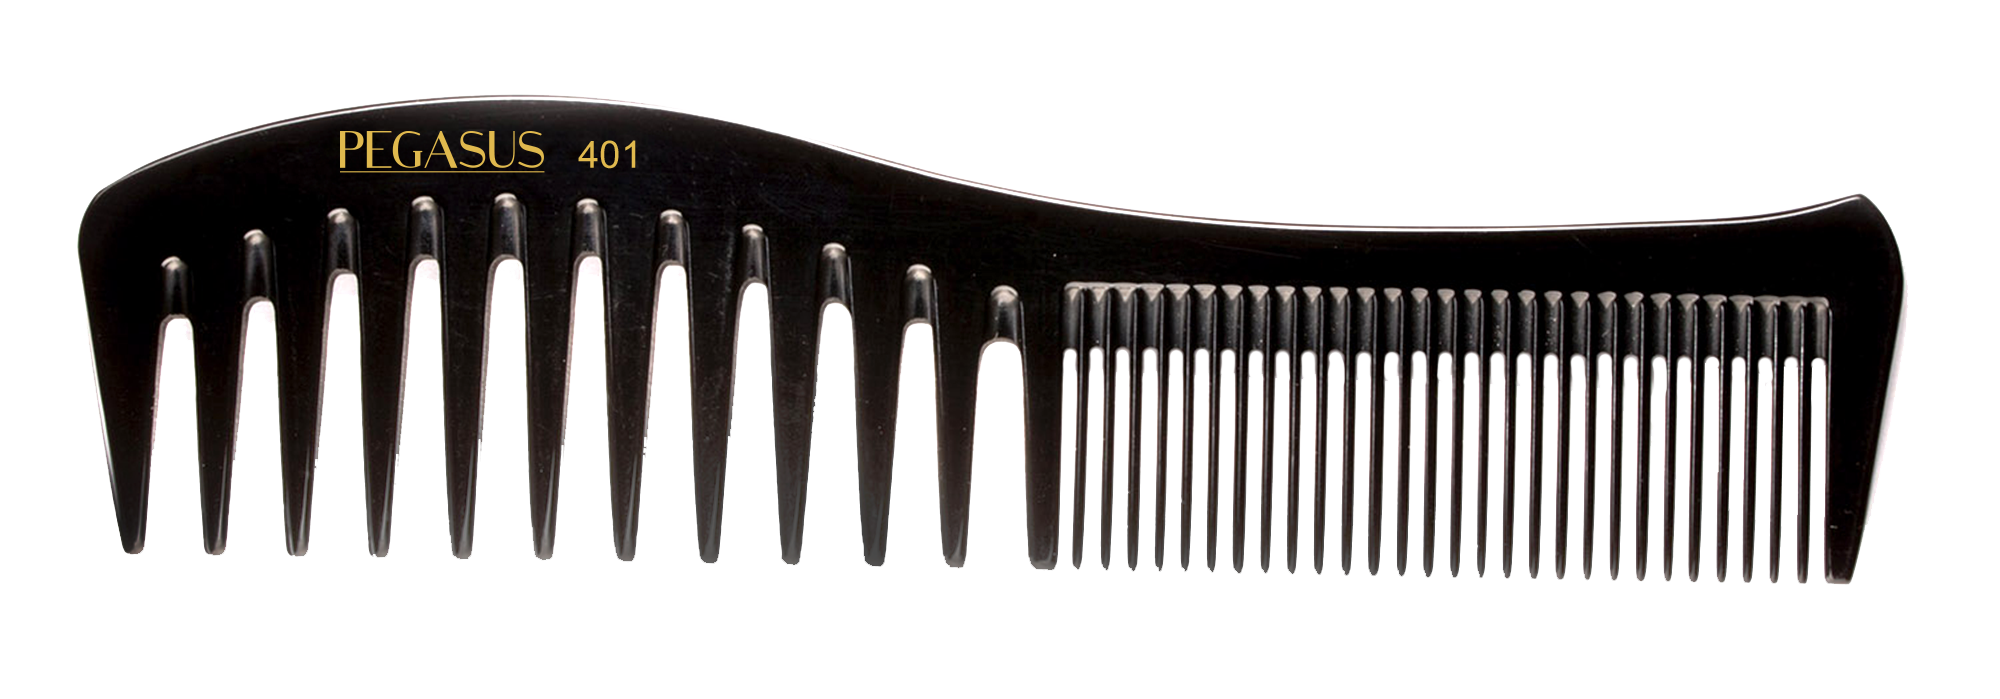 No. 401 Pegasus Hard Rubber Combs - Krest Combs